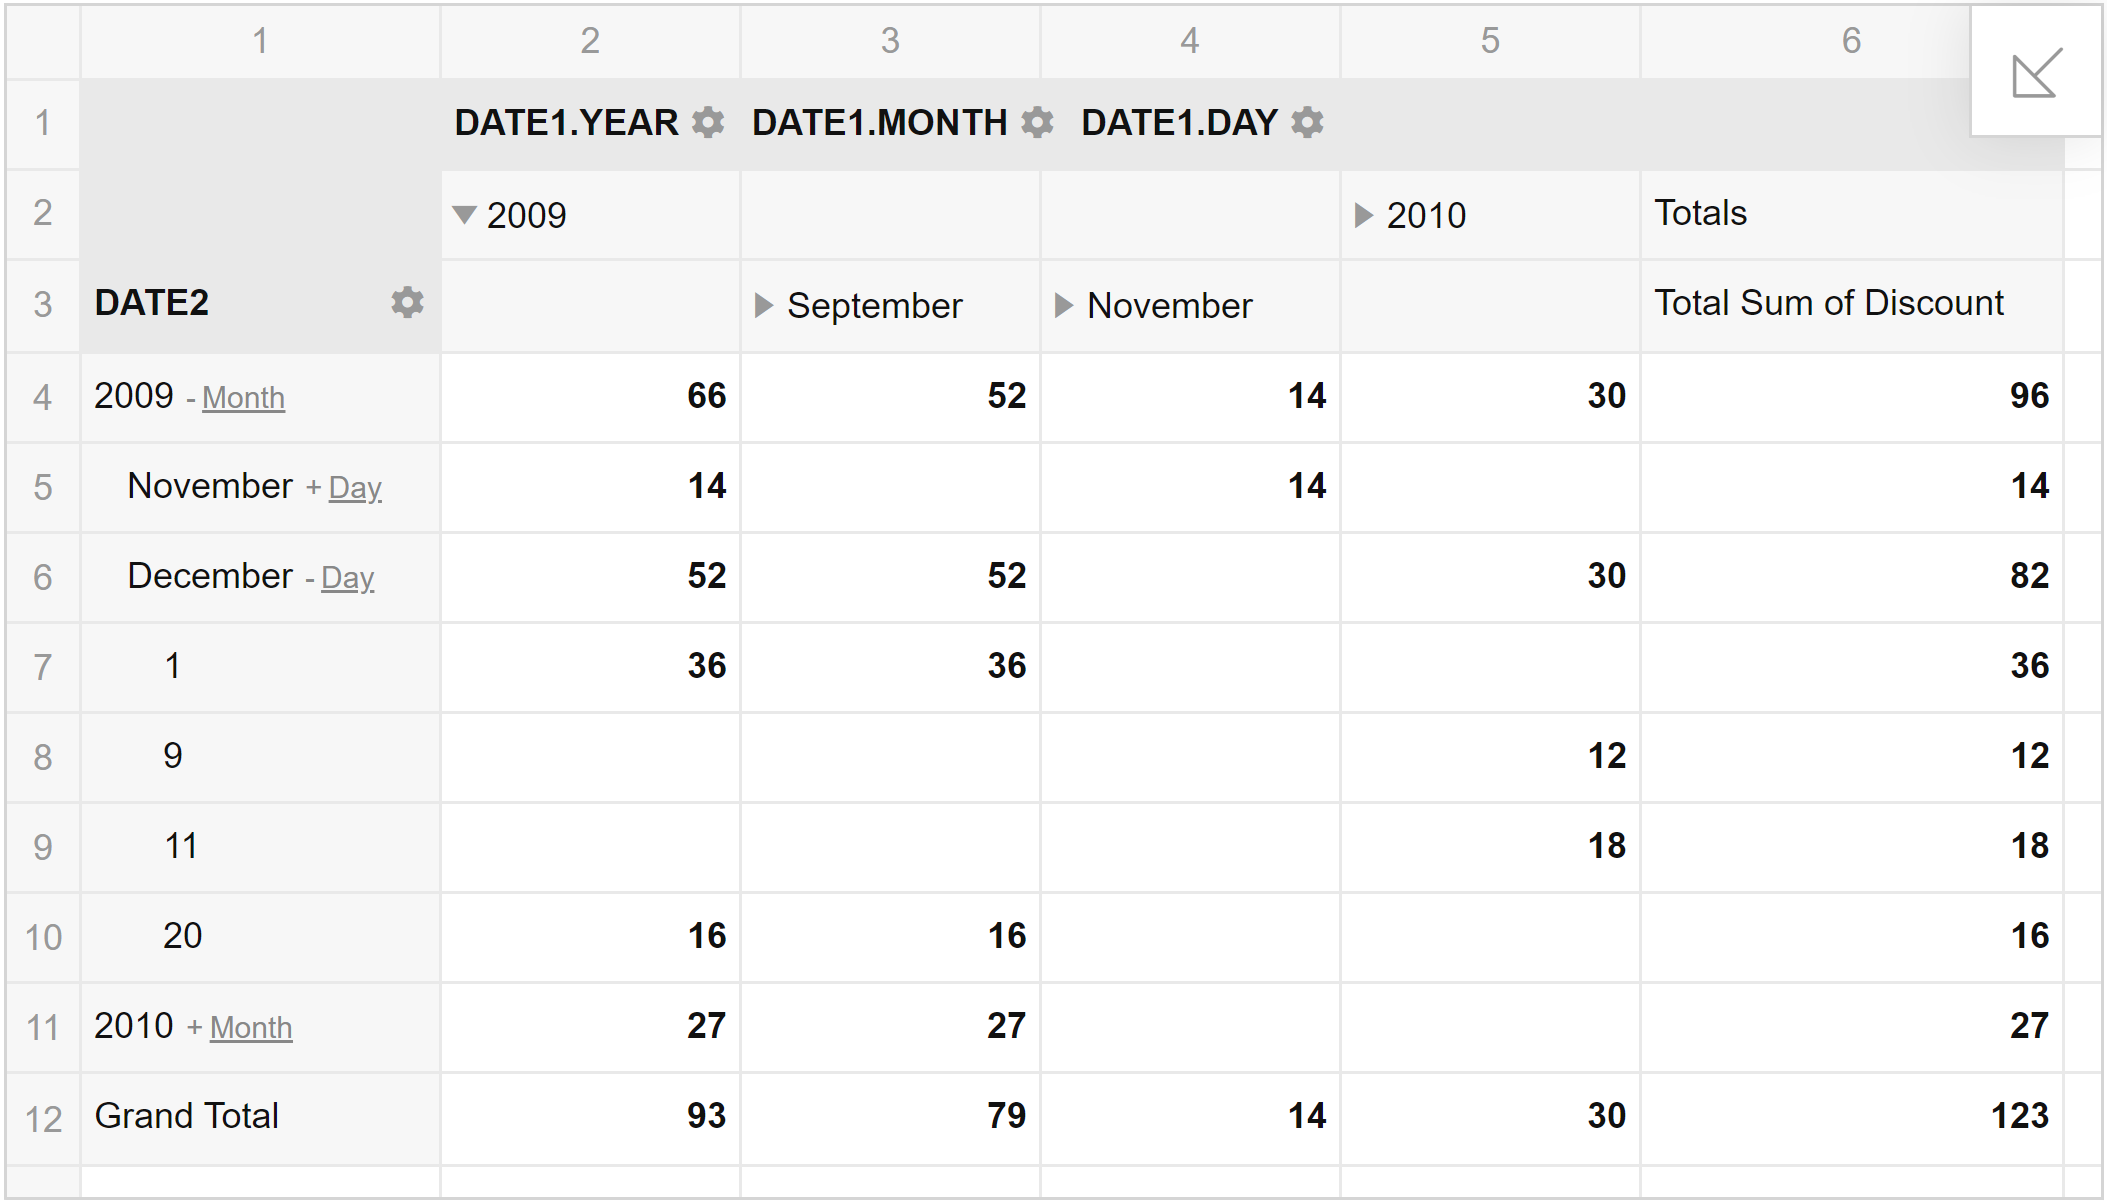 date data types from CSV